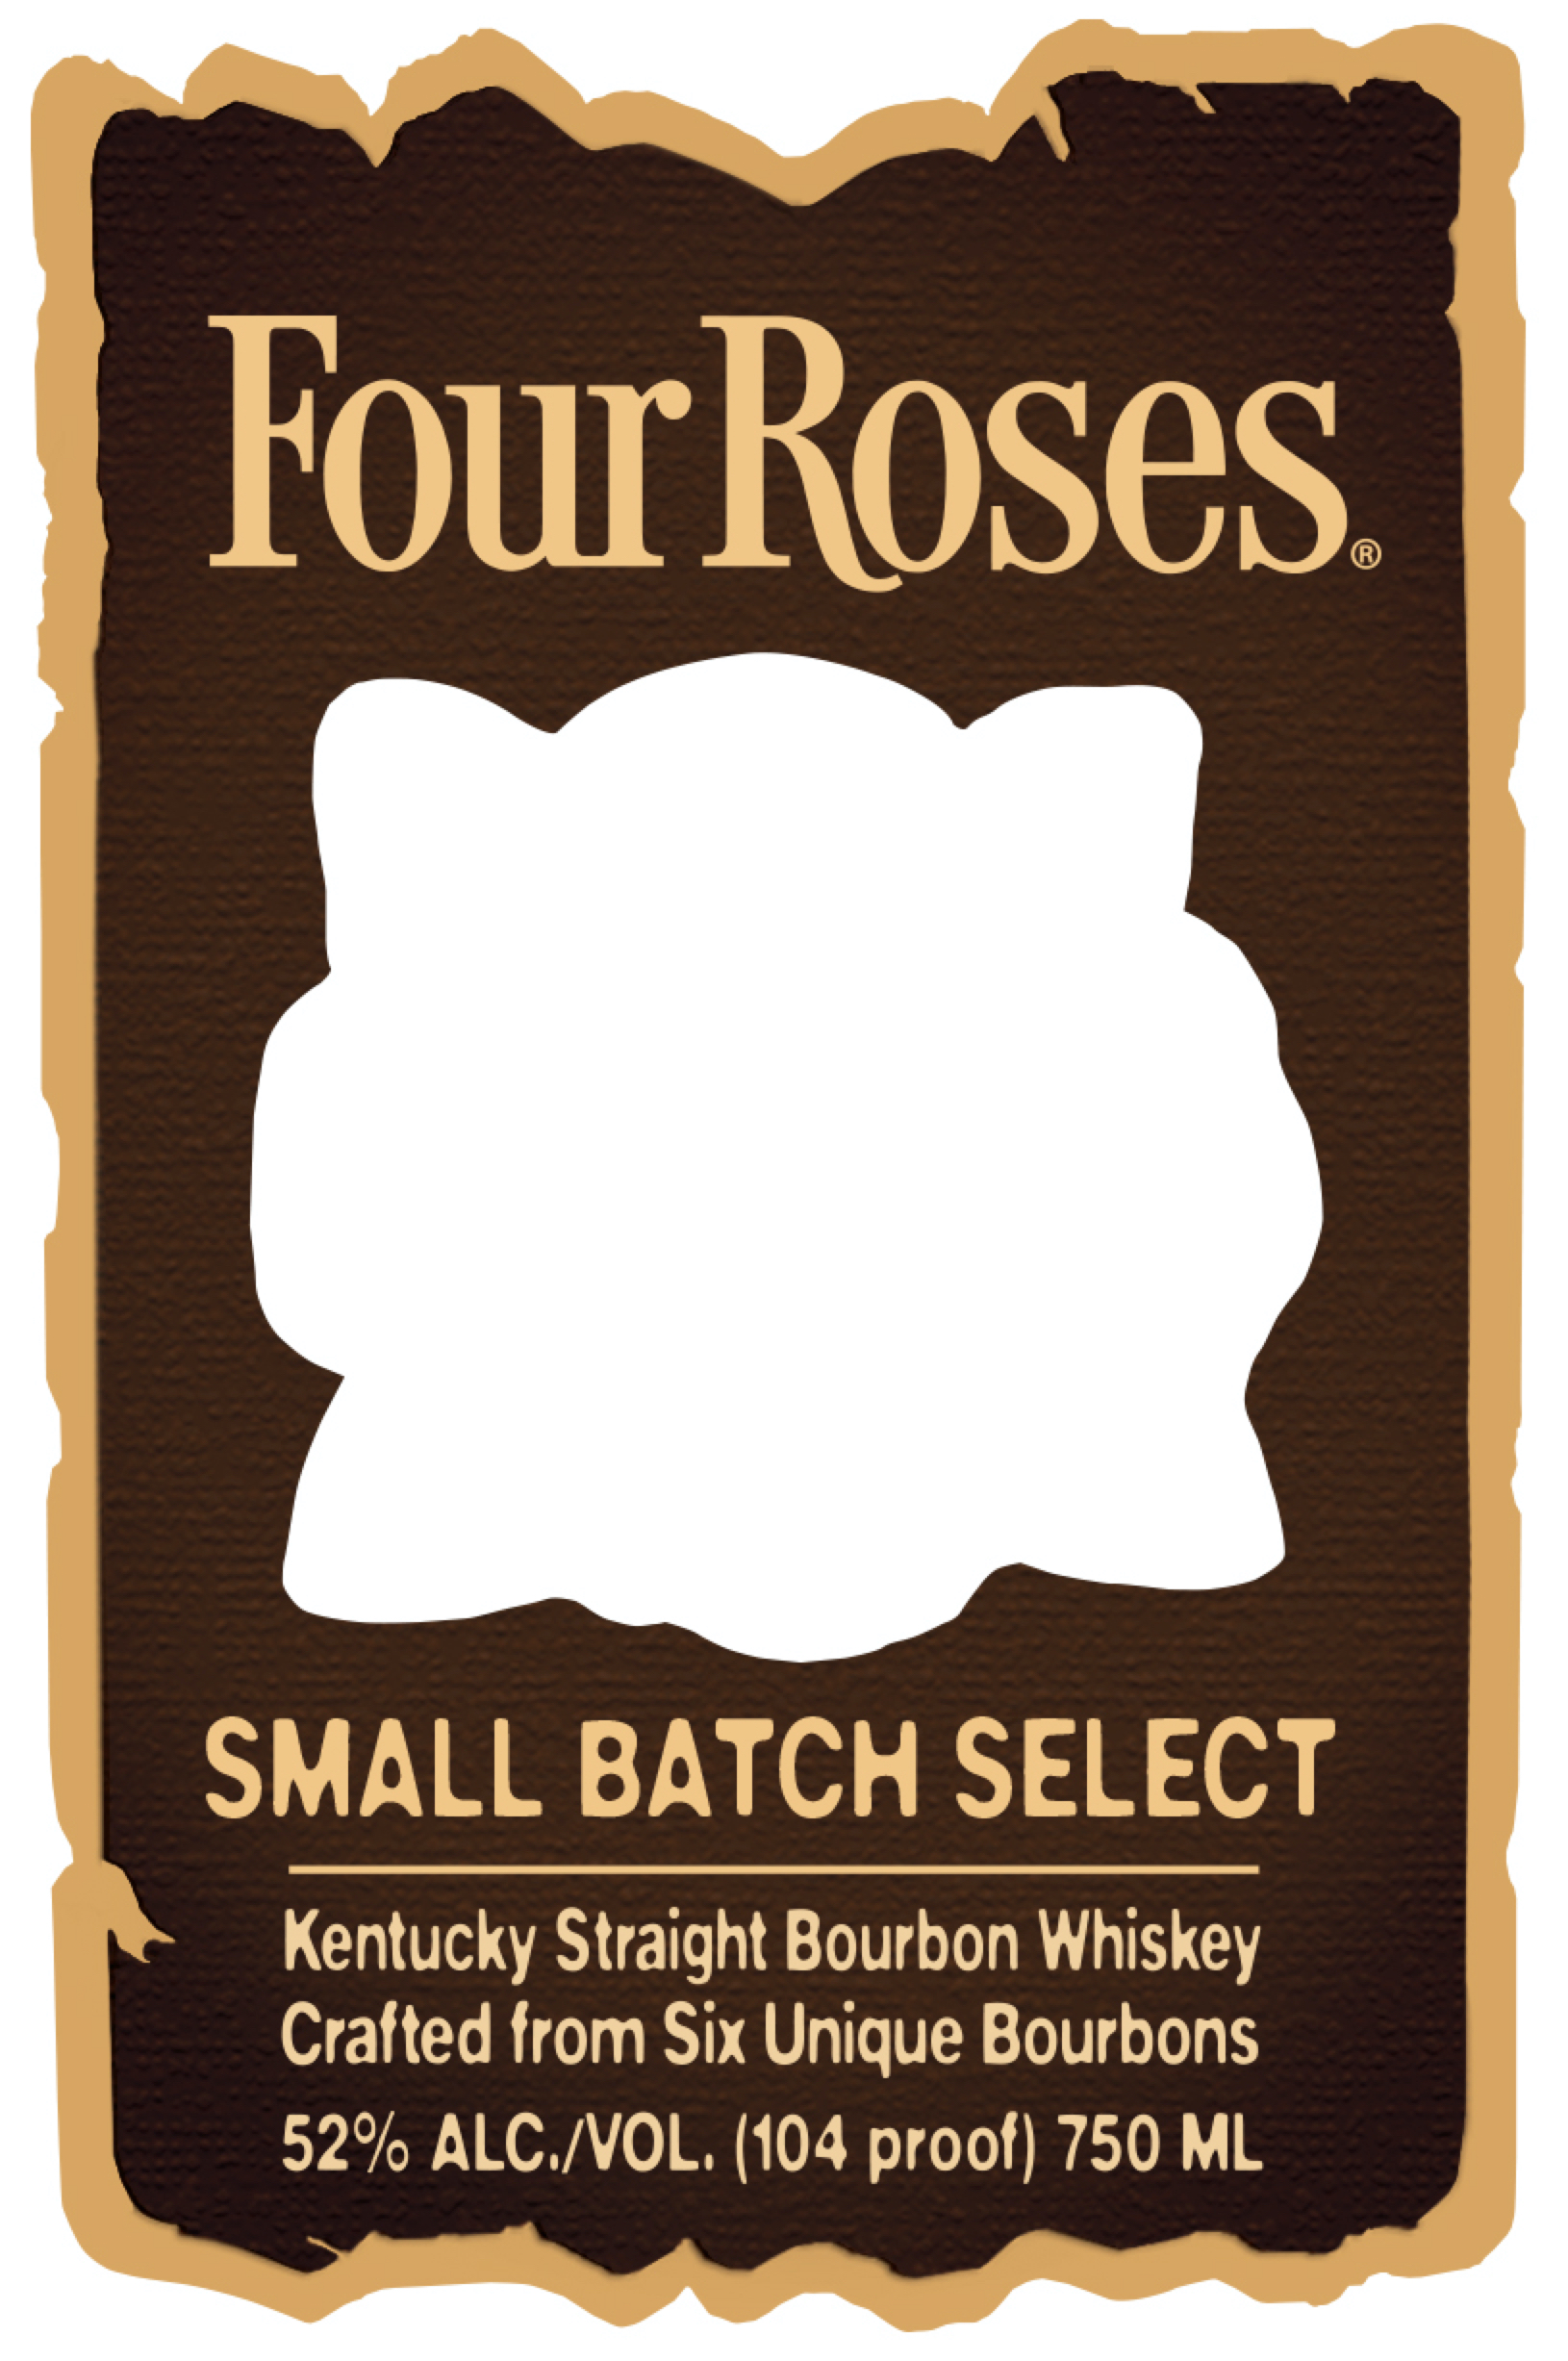 Small Batch Select Label, Front